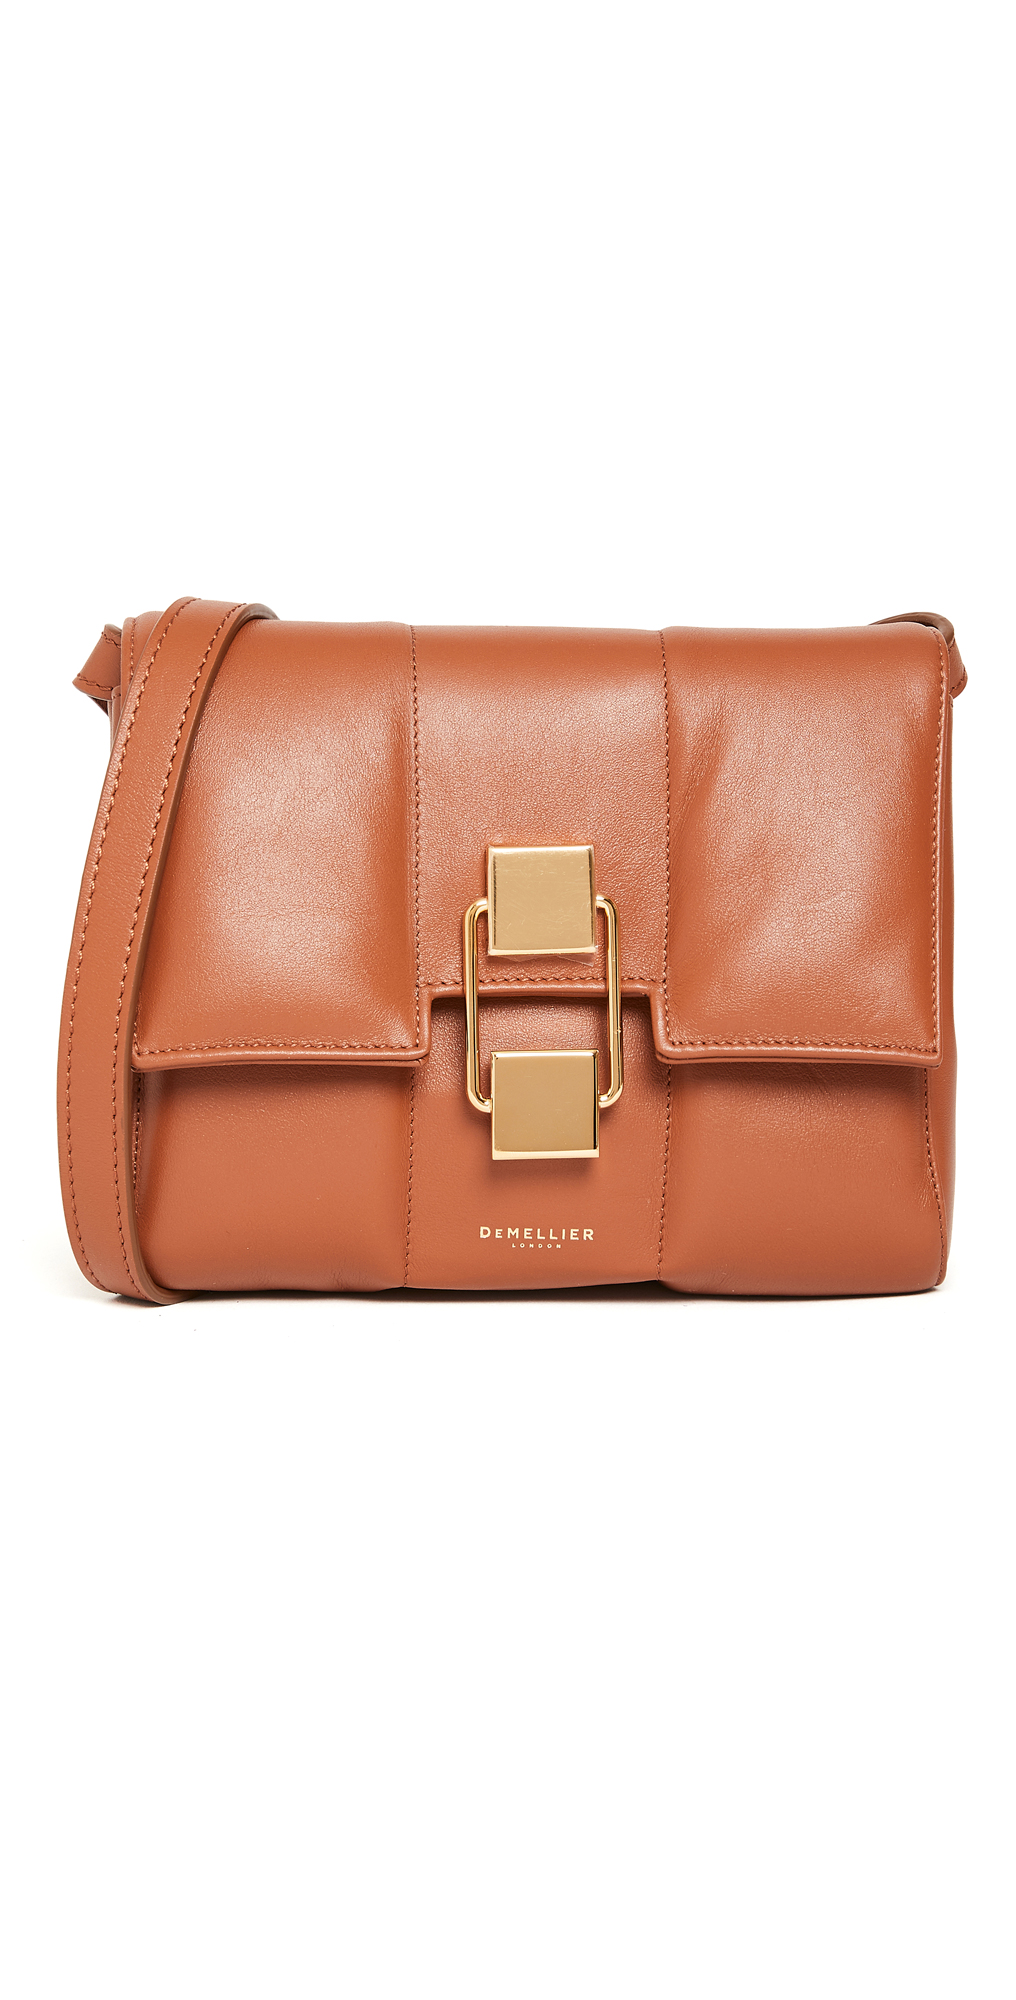 DeMellier Mini Alexandria Bag